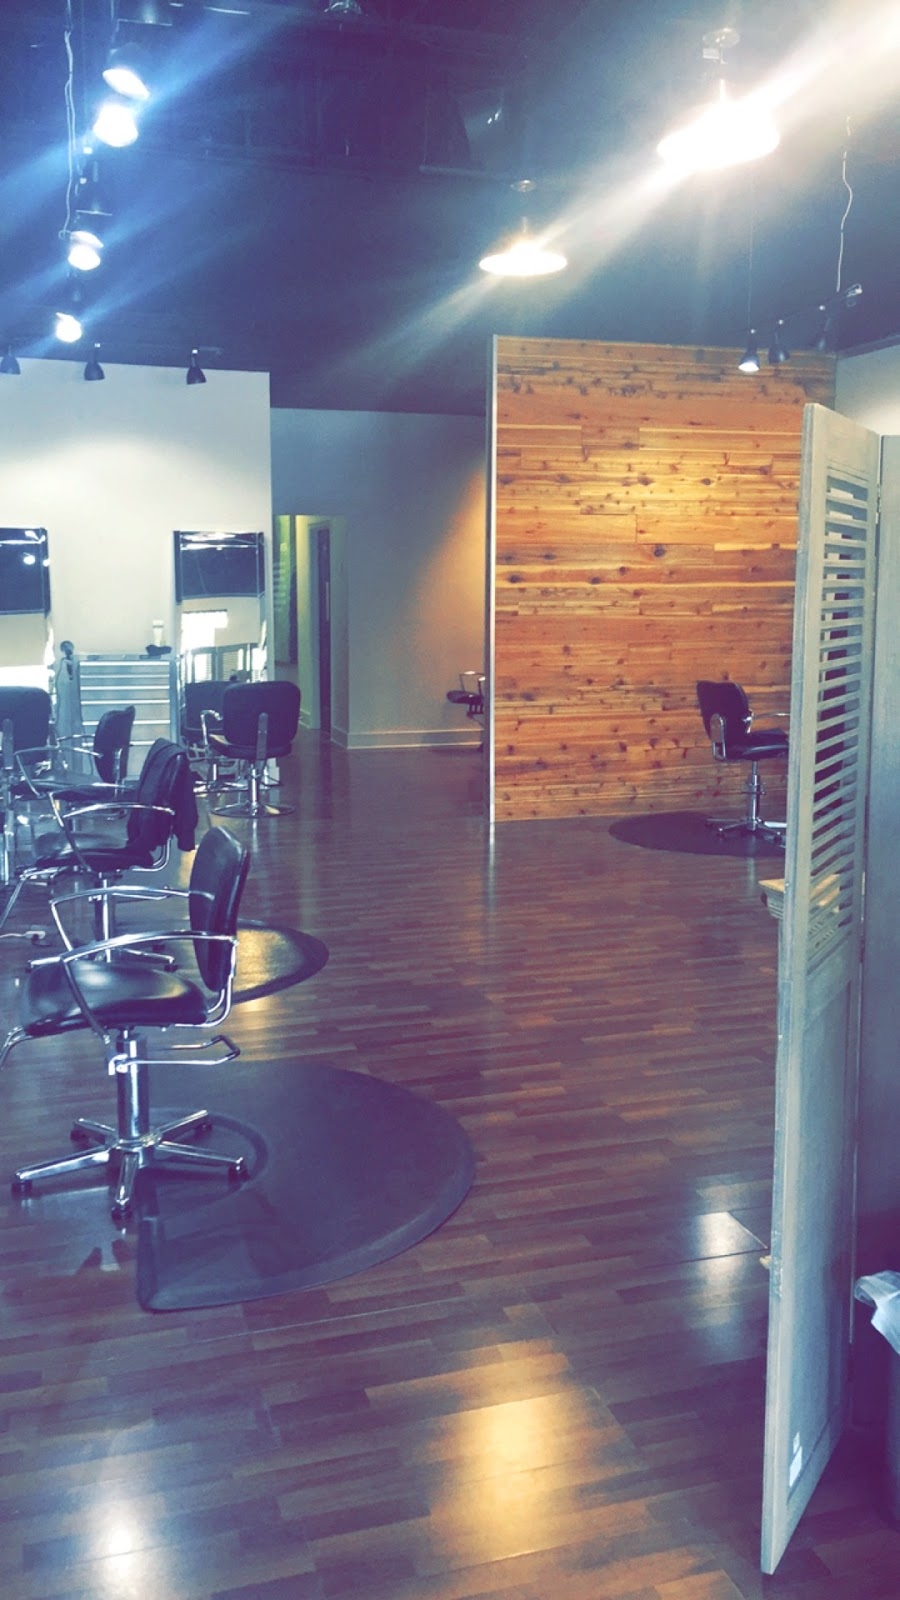 fifth and mae salons - hair care  | Photo 7 of 10 | Address: 880 Marietta Hwy Ste 600, Roswell, GA 30075, USA | Phone: (678) 381-2485